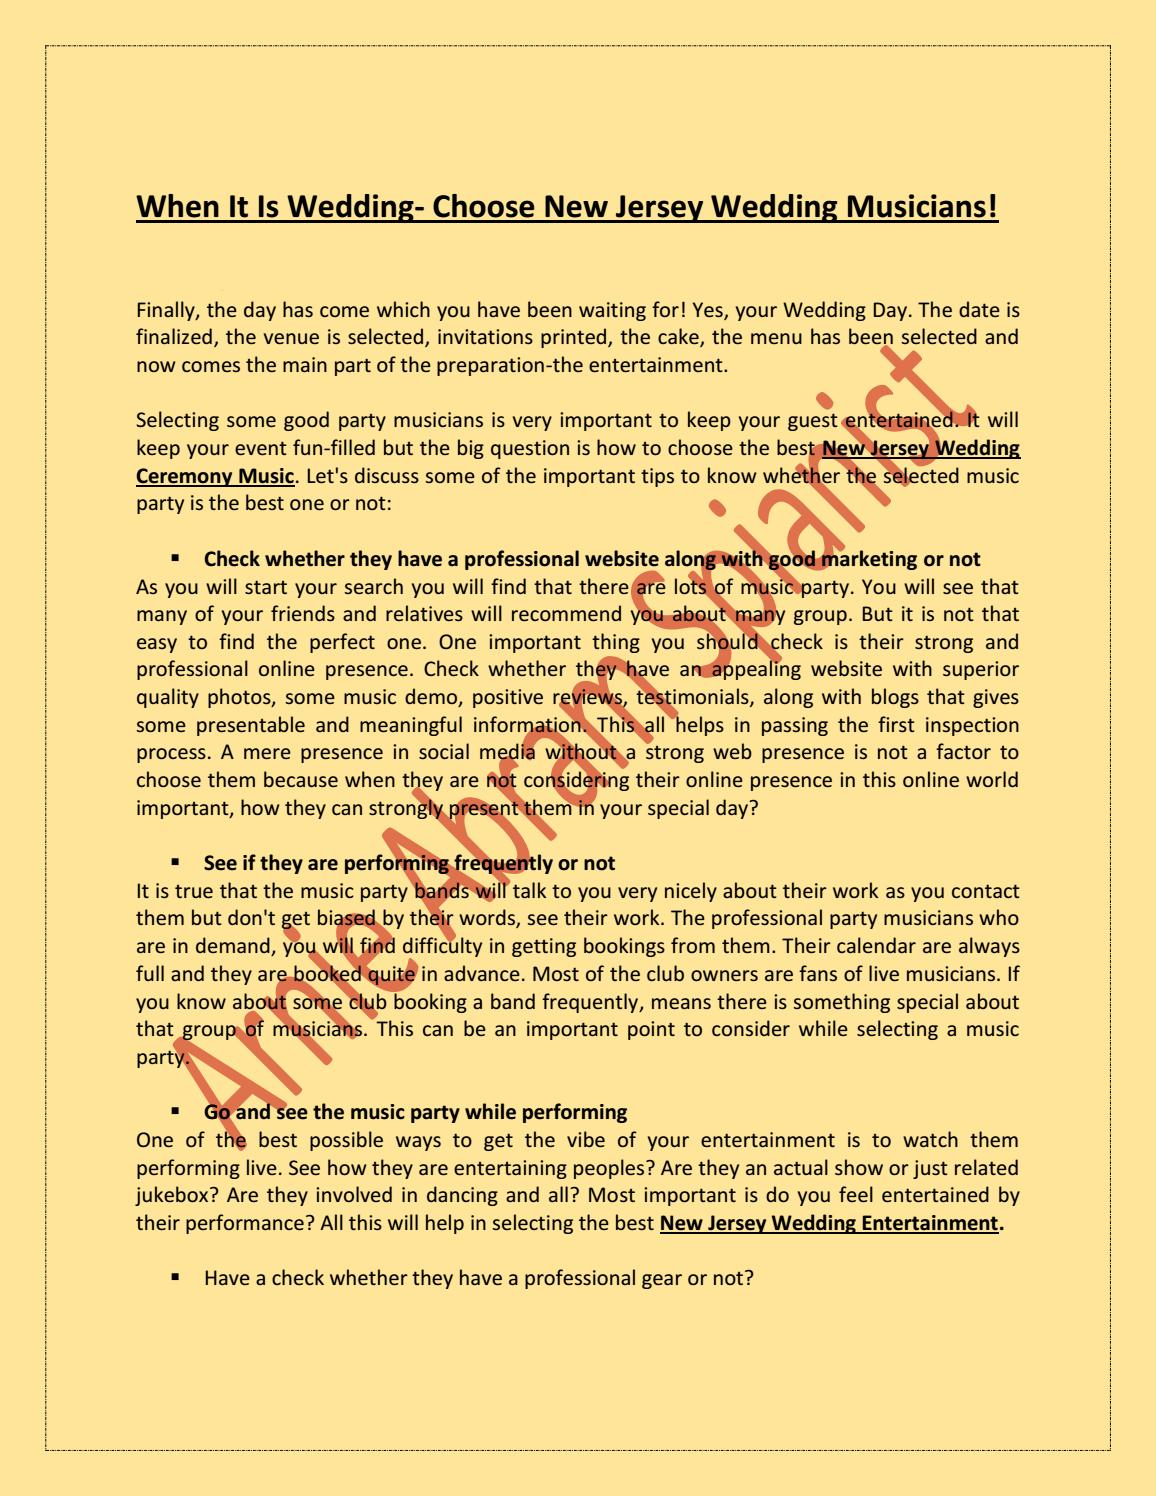 82a97380e When it is wedding choose new jersey wedding musicians! by ...